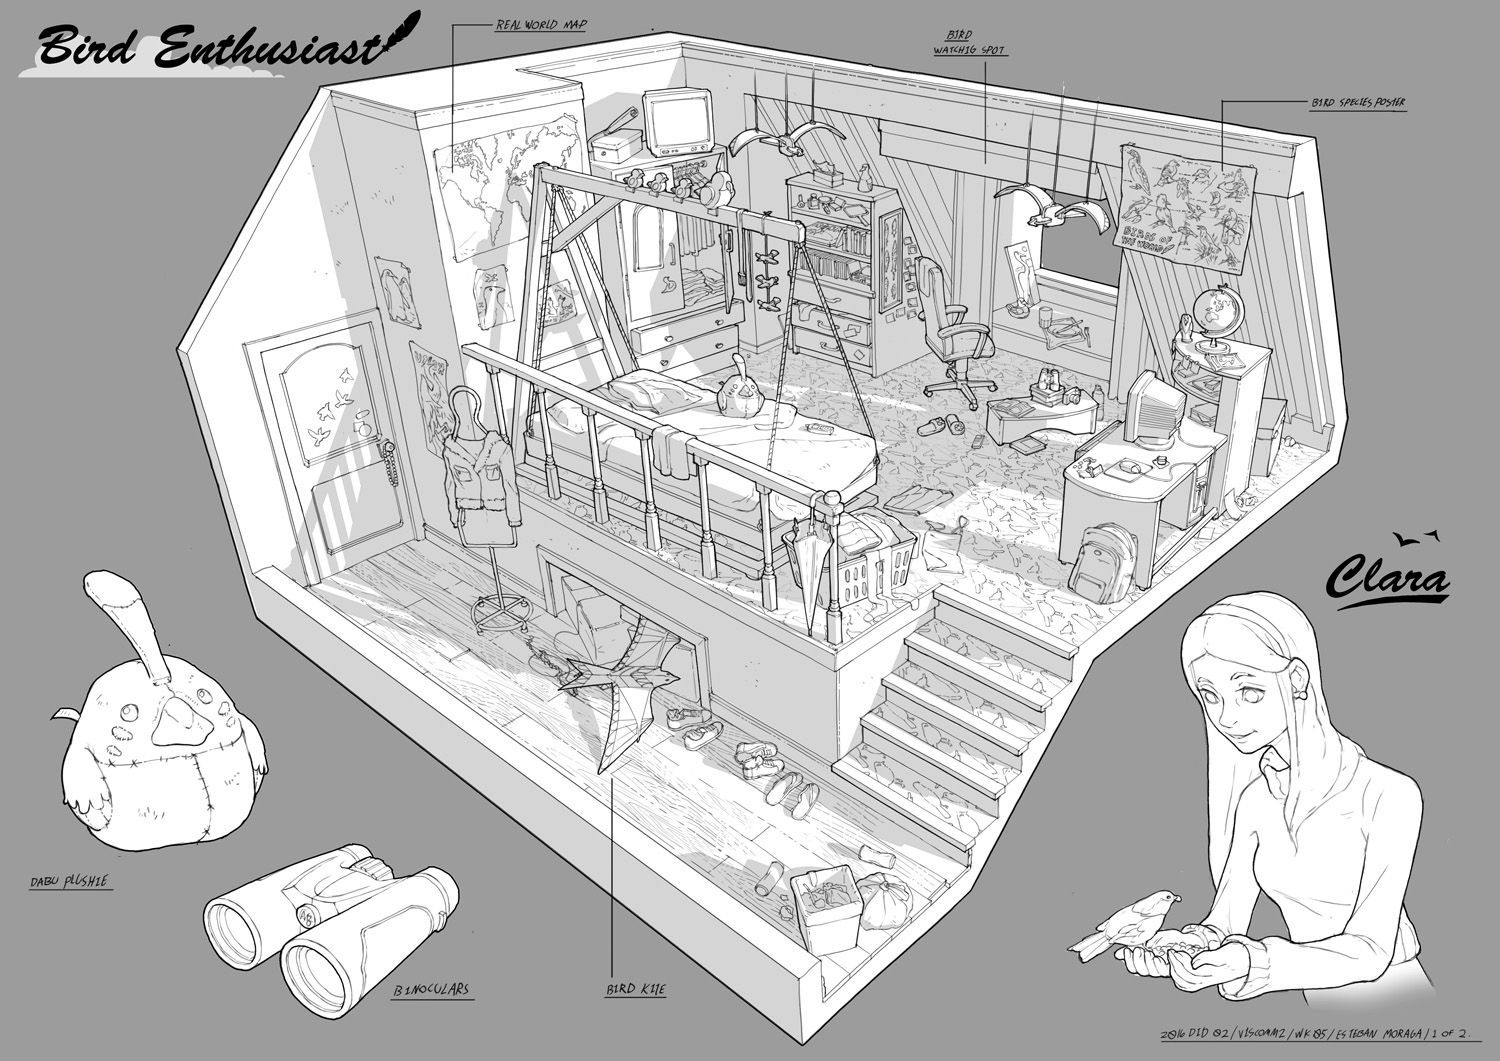 Pin by Quint Tsai on concept art | Design, Interior sketch ... House Sketch Design Layout Html on html page layout, html layout tutorial, iphone layout design, html layout text, grid layout design, ipad layout design, indesign layout design, android layout design, html layout maker, css layout design, powerpoint layout design, app layout design,